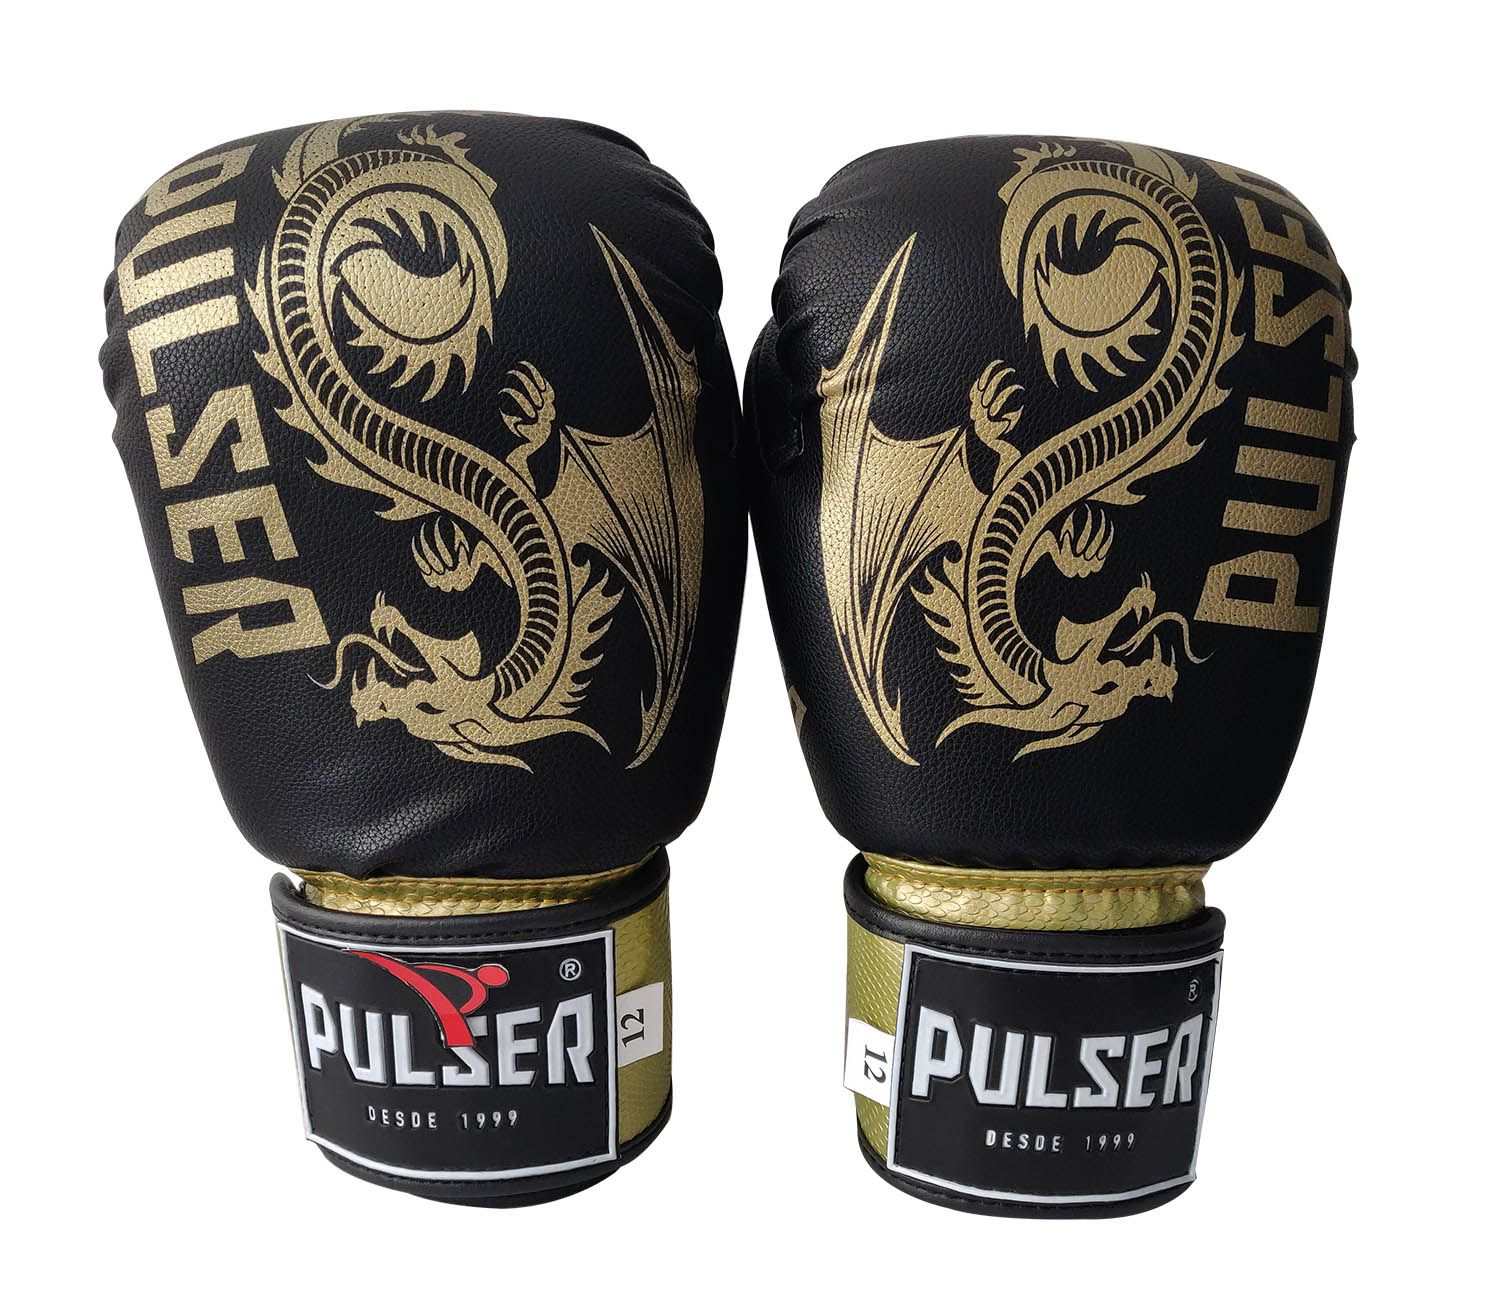 Kit de Boxe / Muay Thai 10oz - Dragão Preto New - Pulser - PRALUTA SHOP